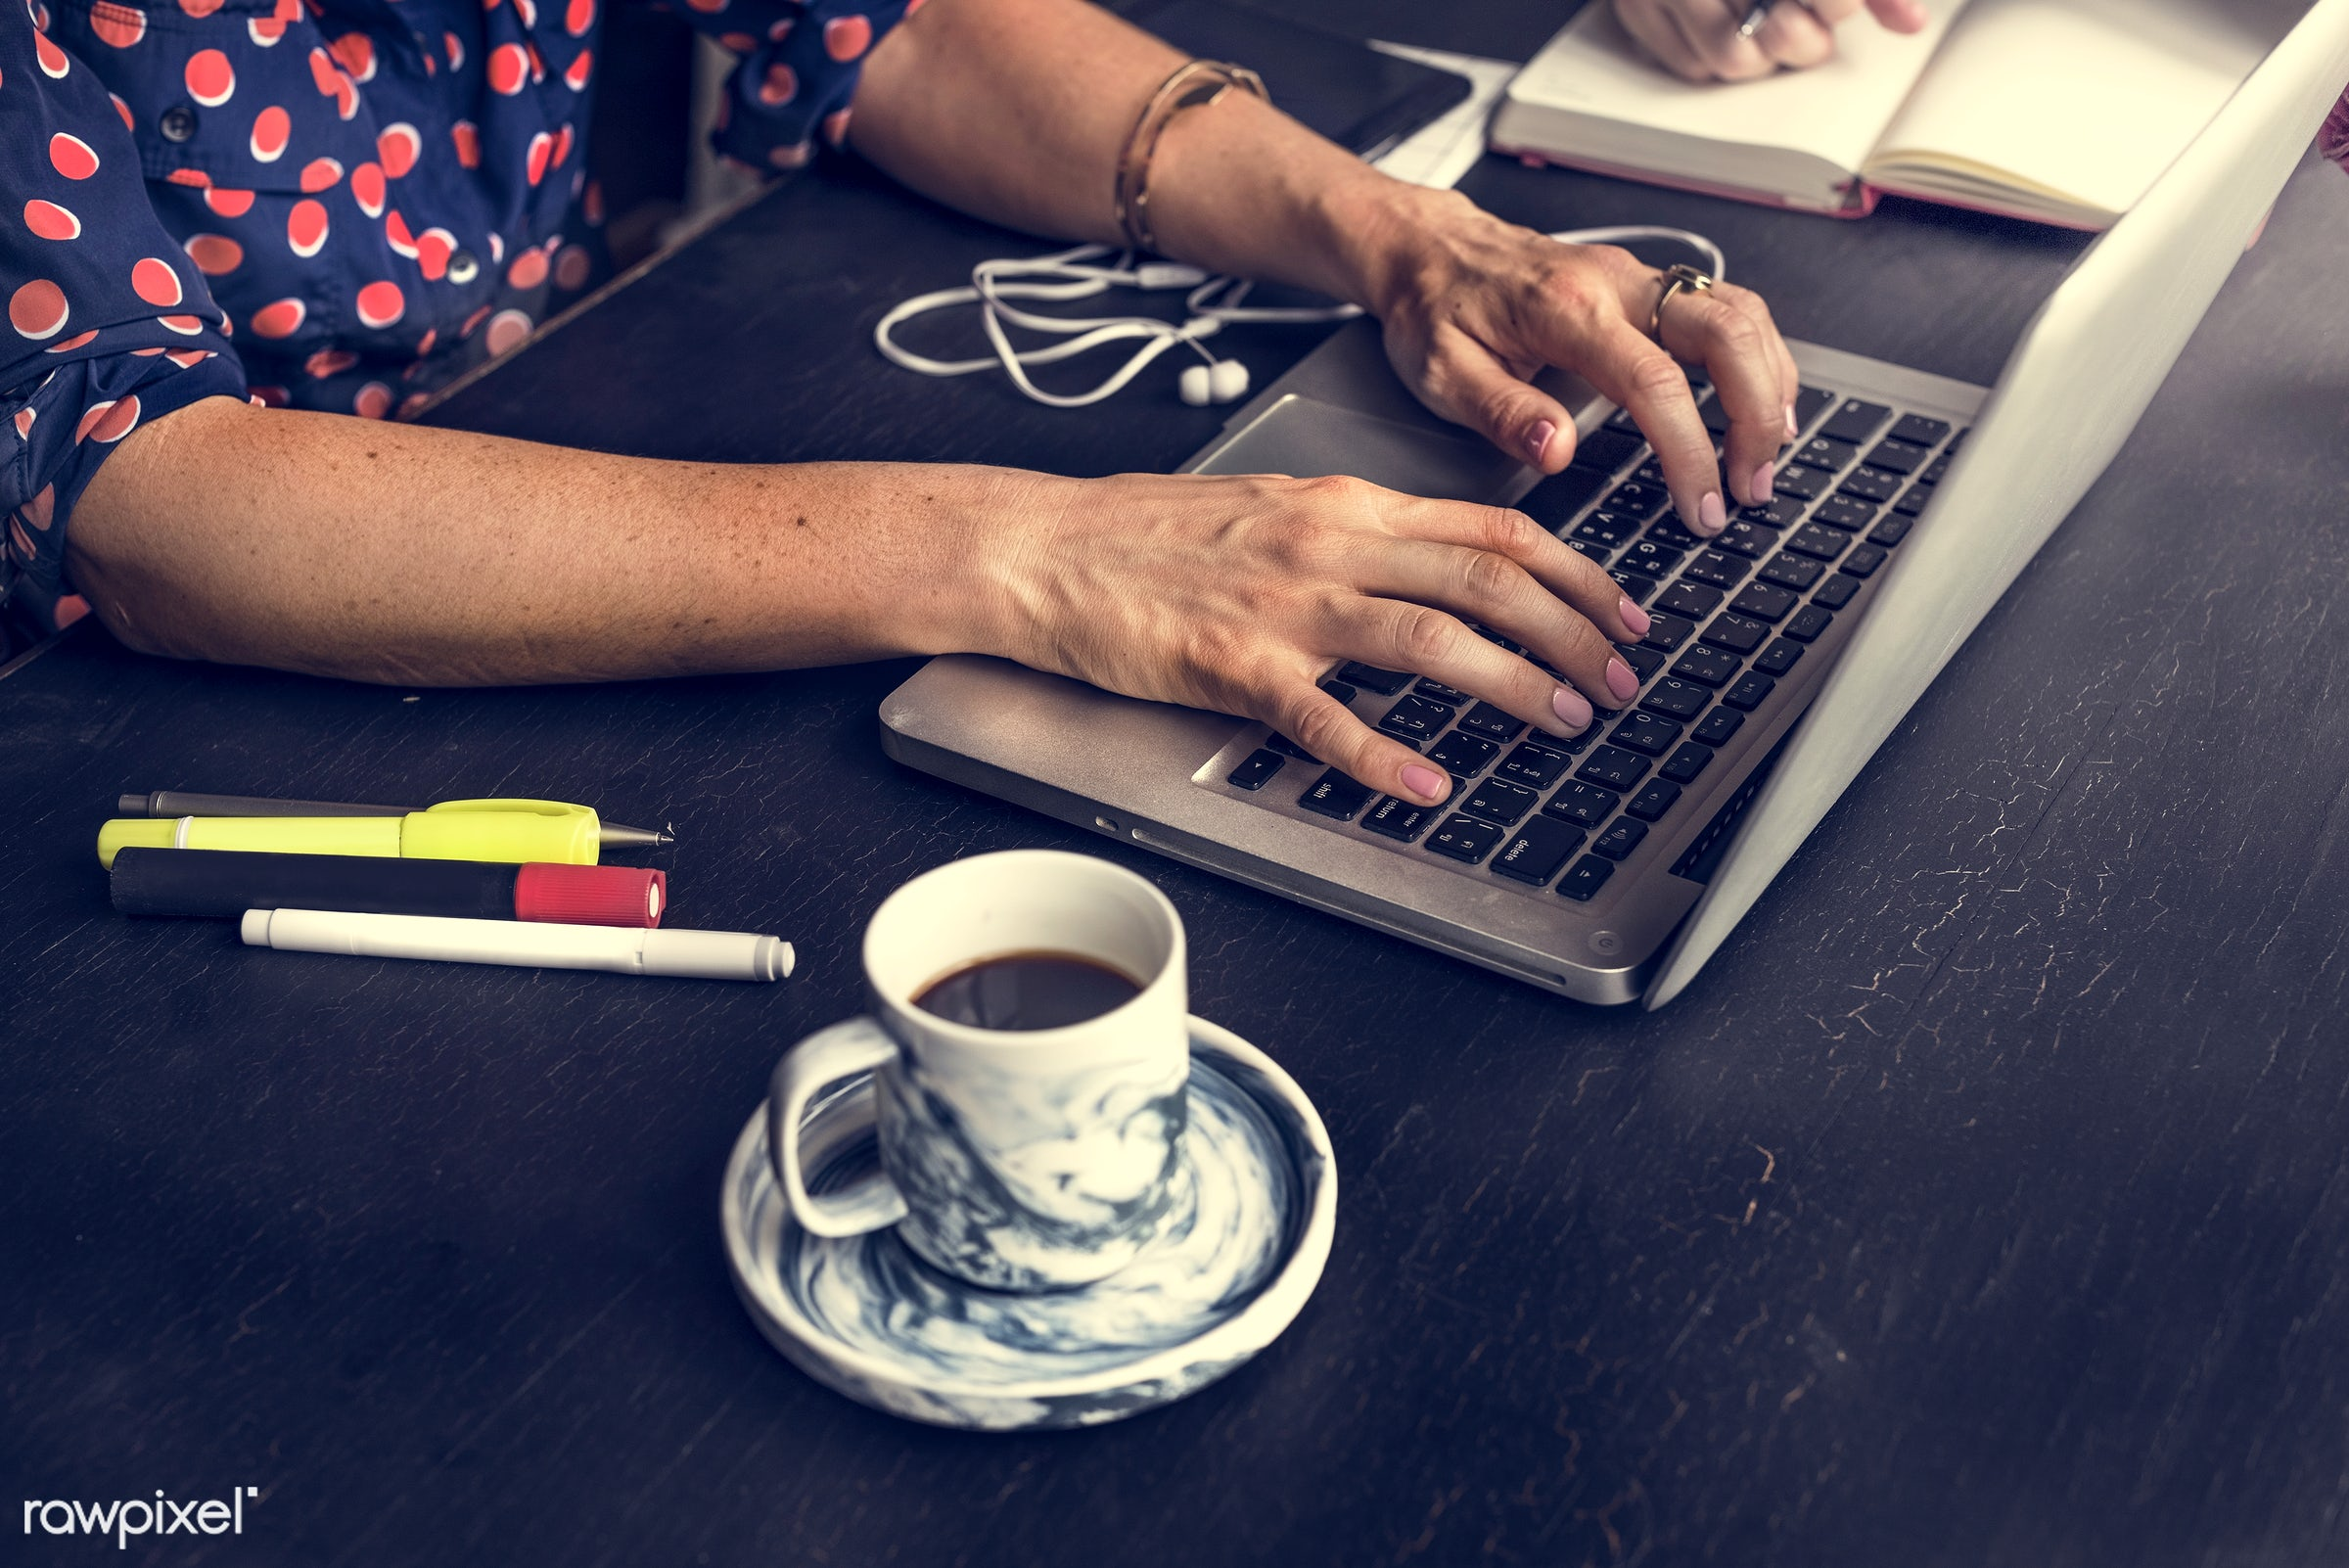 cup, person, technology, workspace, workplace, desk, type, people, pens, search, hands, woman, drink, laptop, typing,...